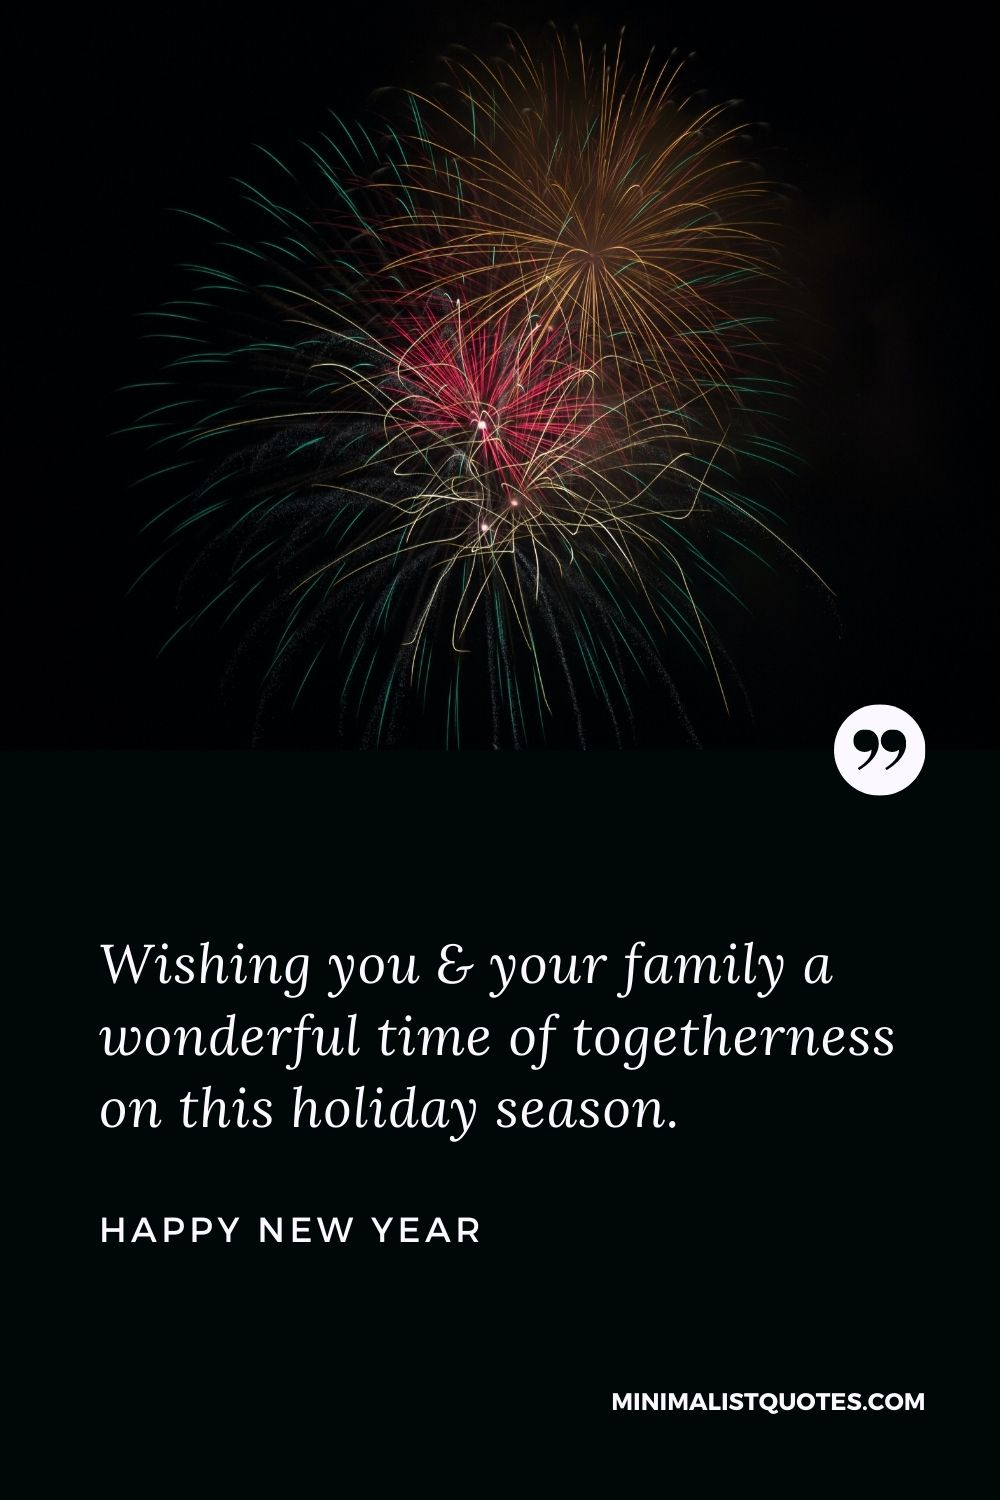 New Year - Wishing you & your family a wonderful time of togetherness on this holiday season.